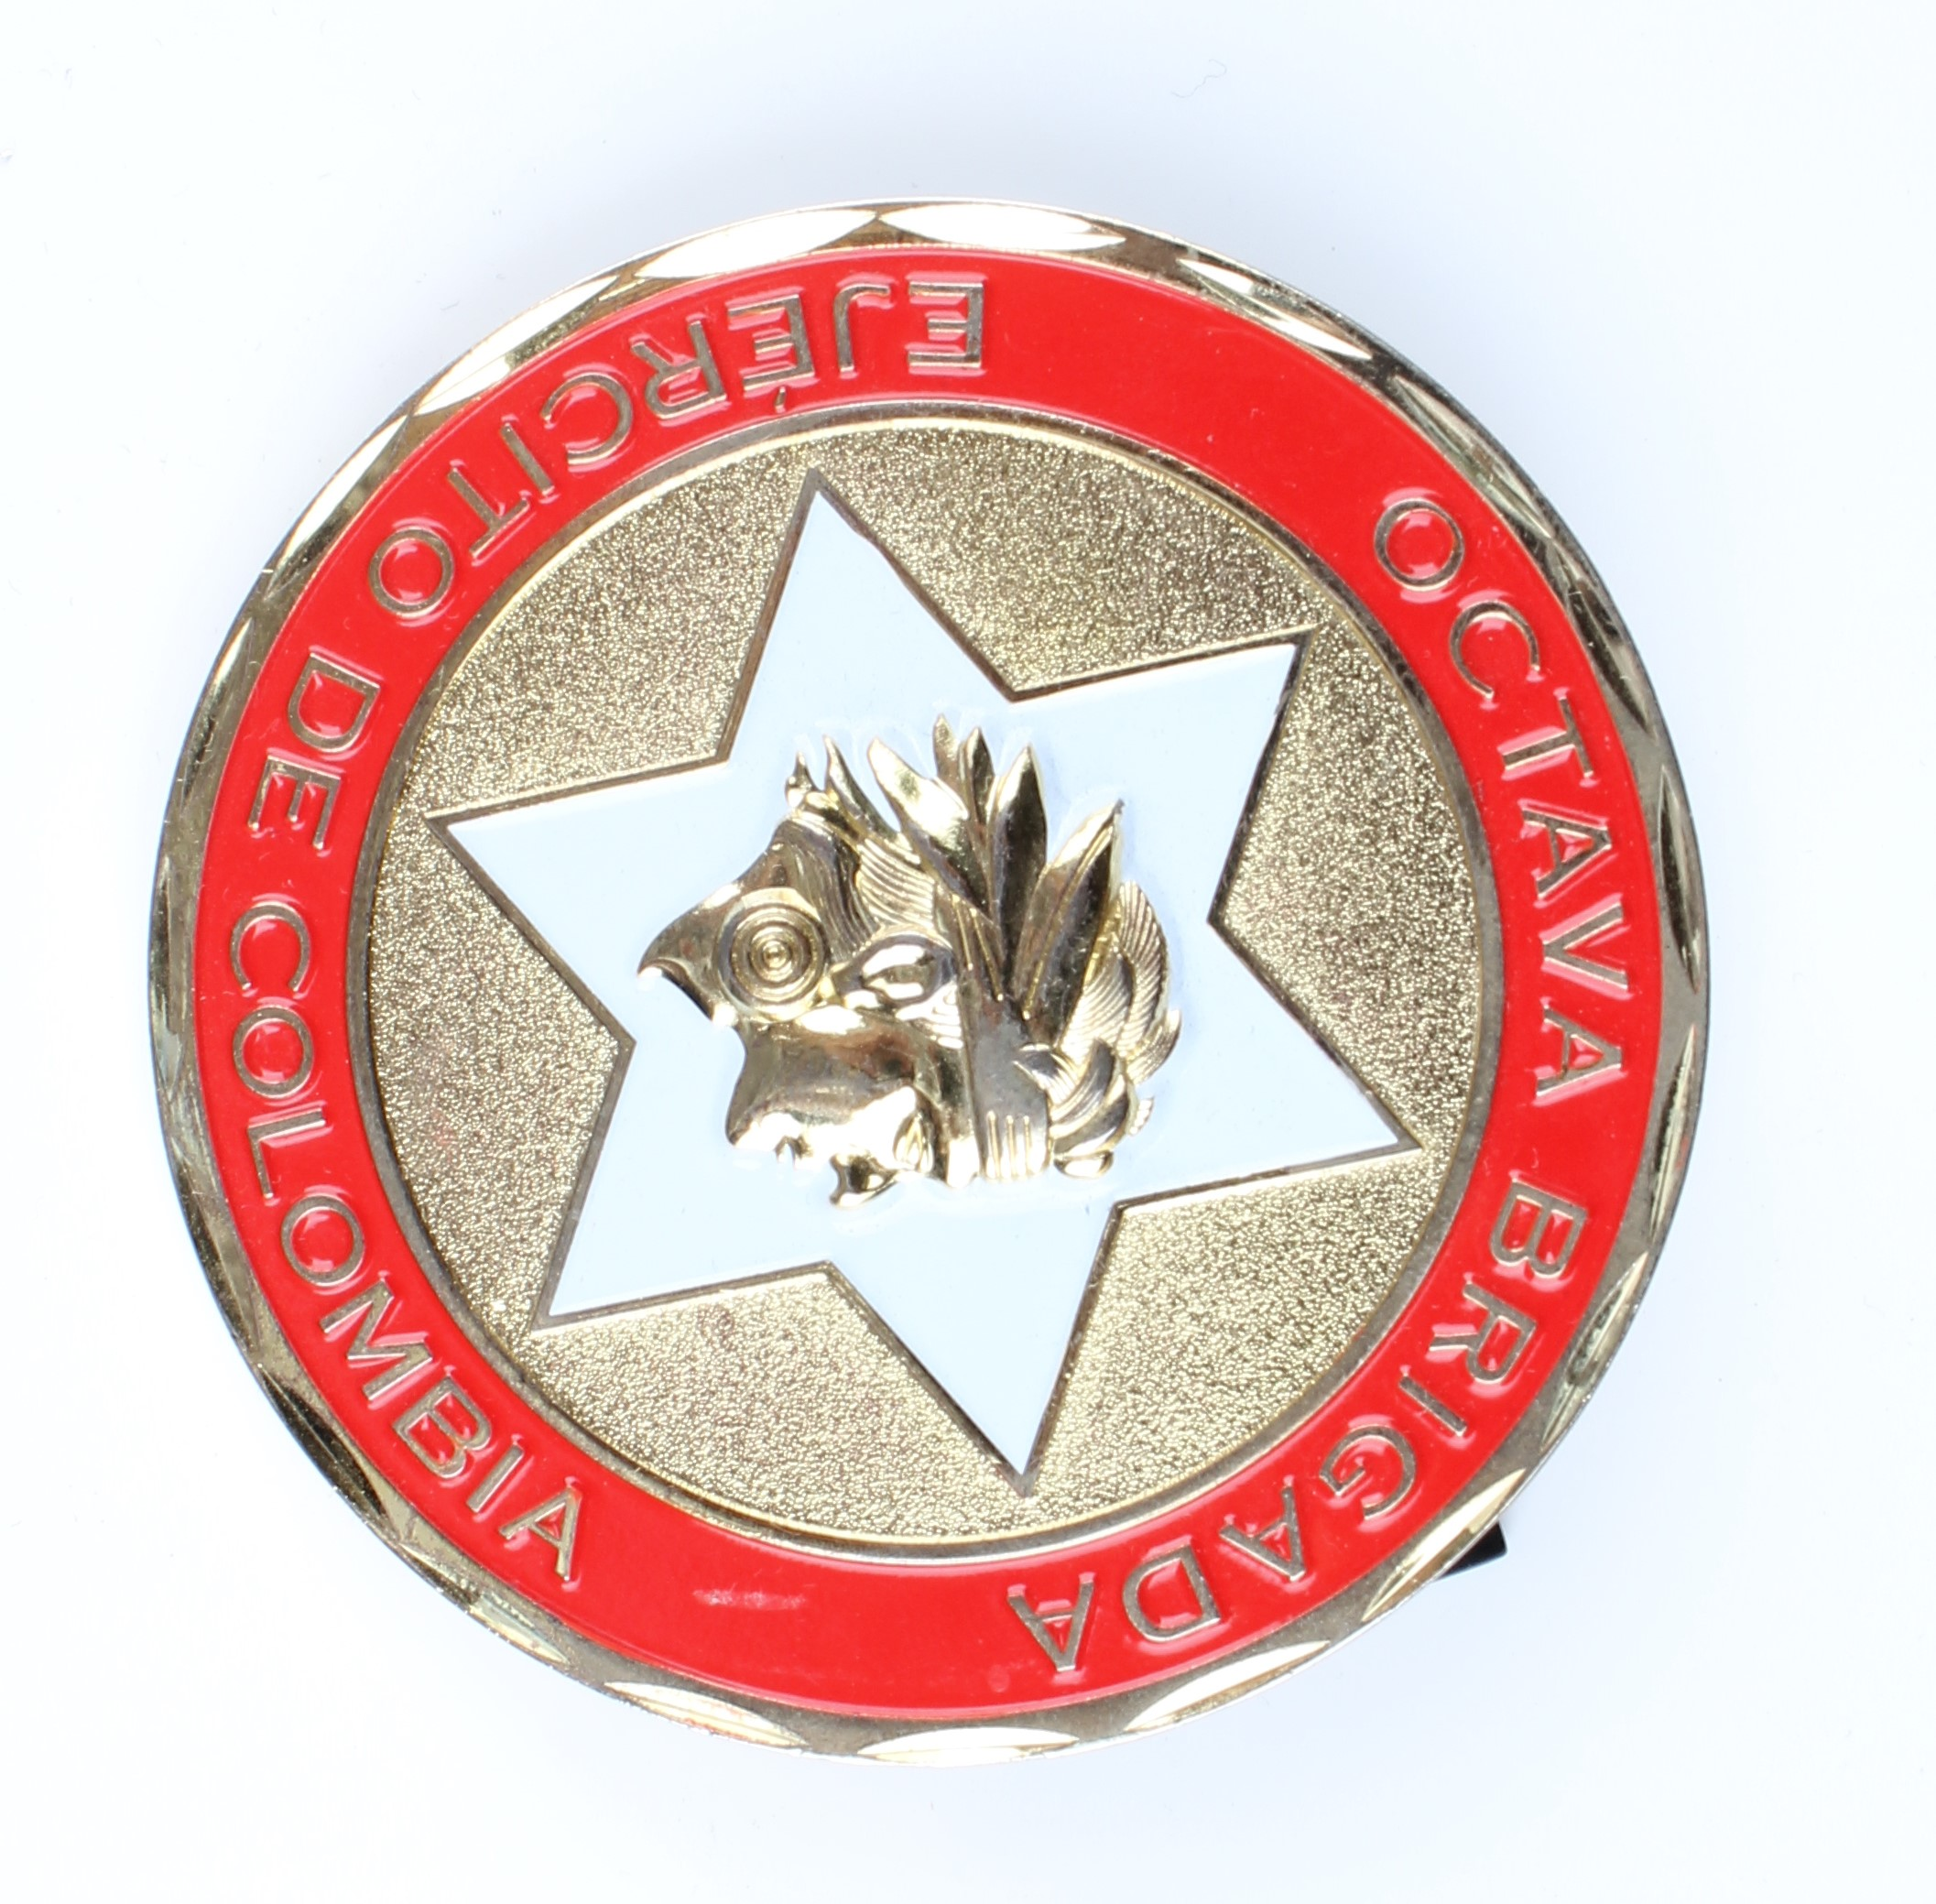 Wholesale Promotional Cheap Custom Challenge Coins Factory Metal Casting 3D Antique Commemorate Coins